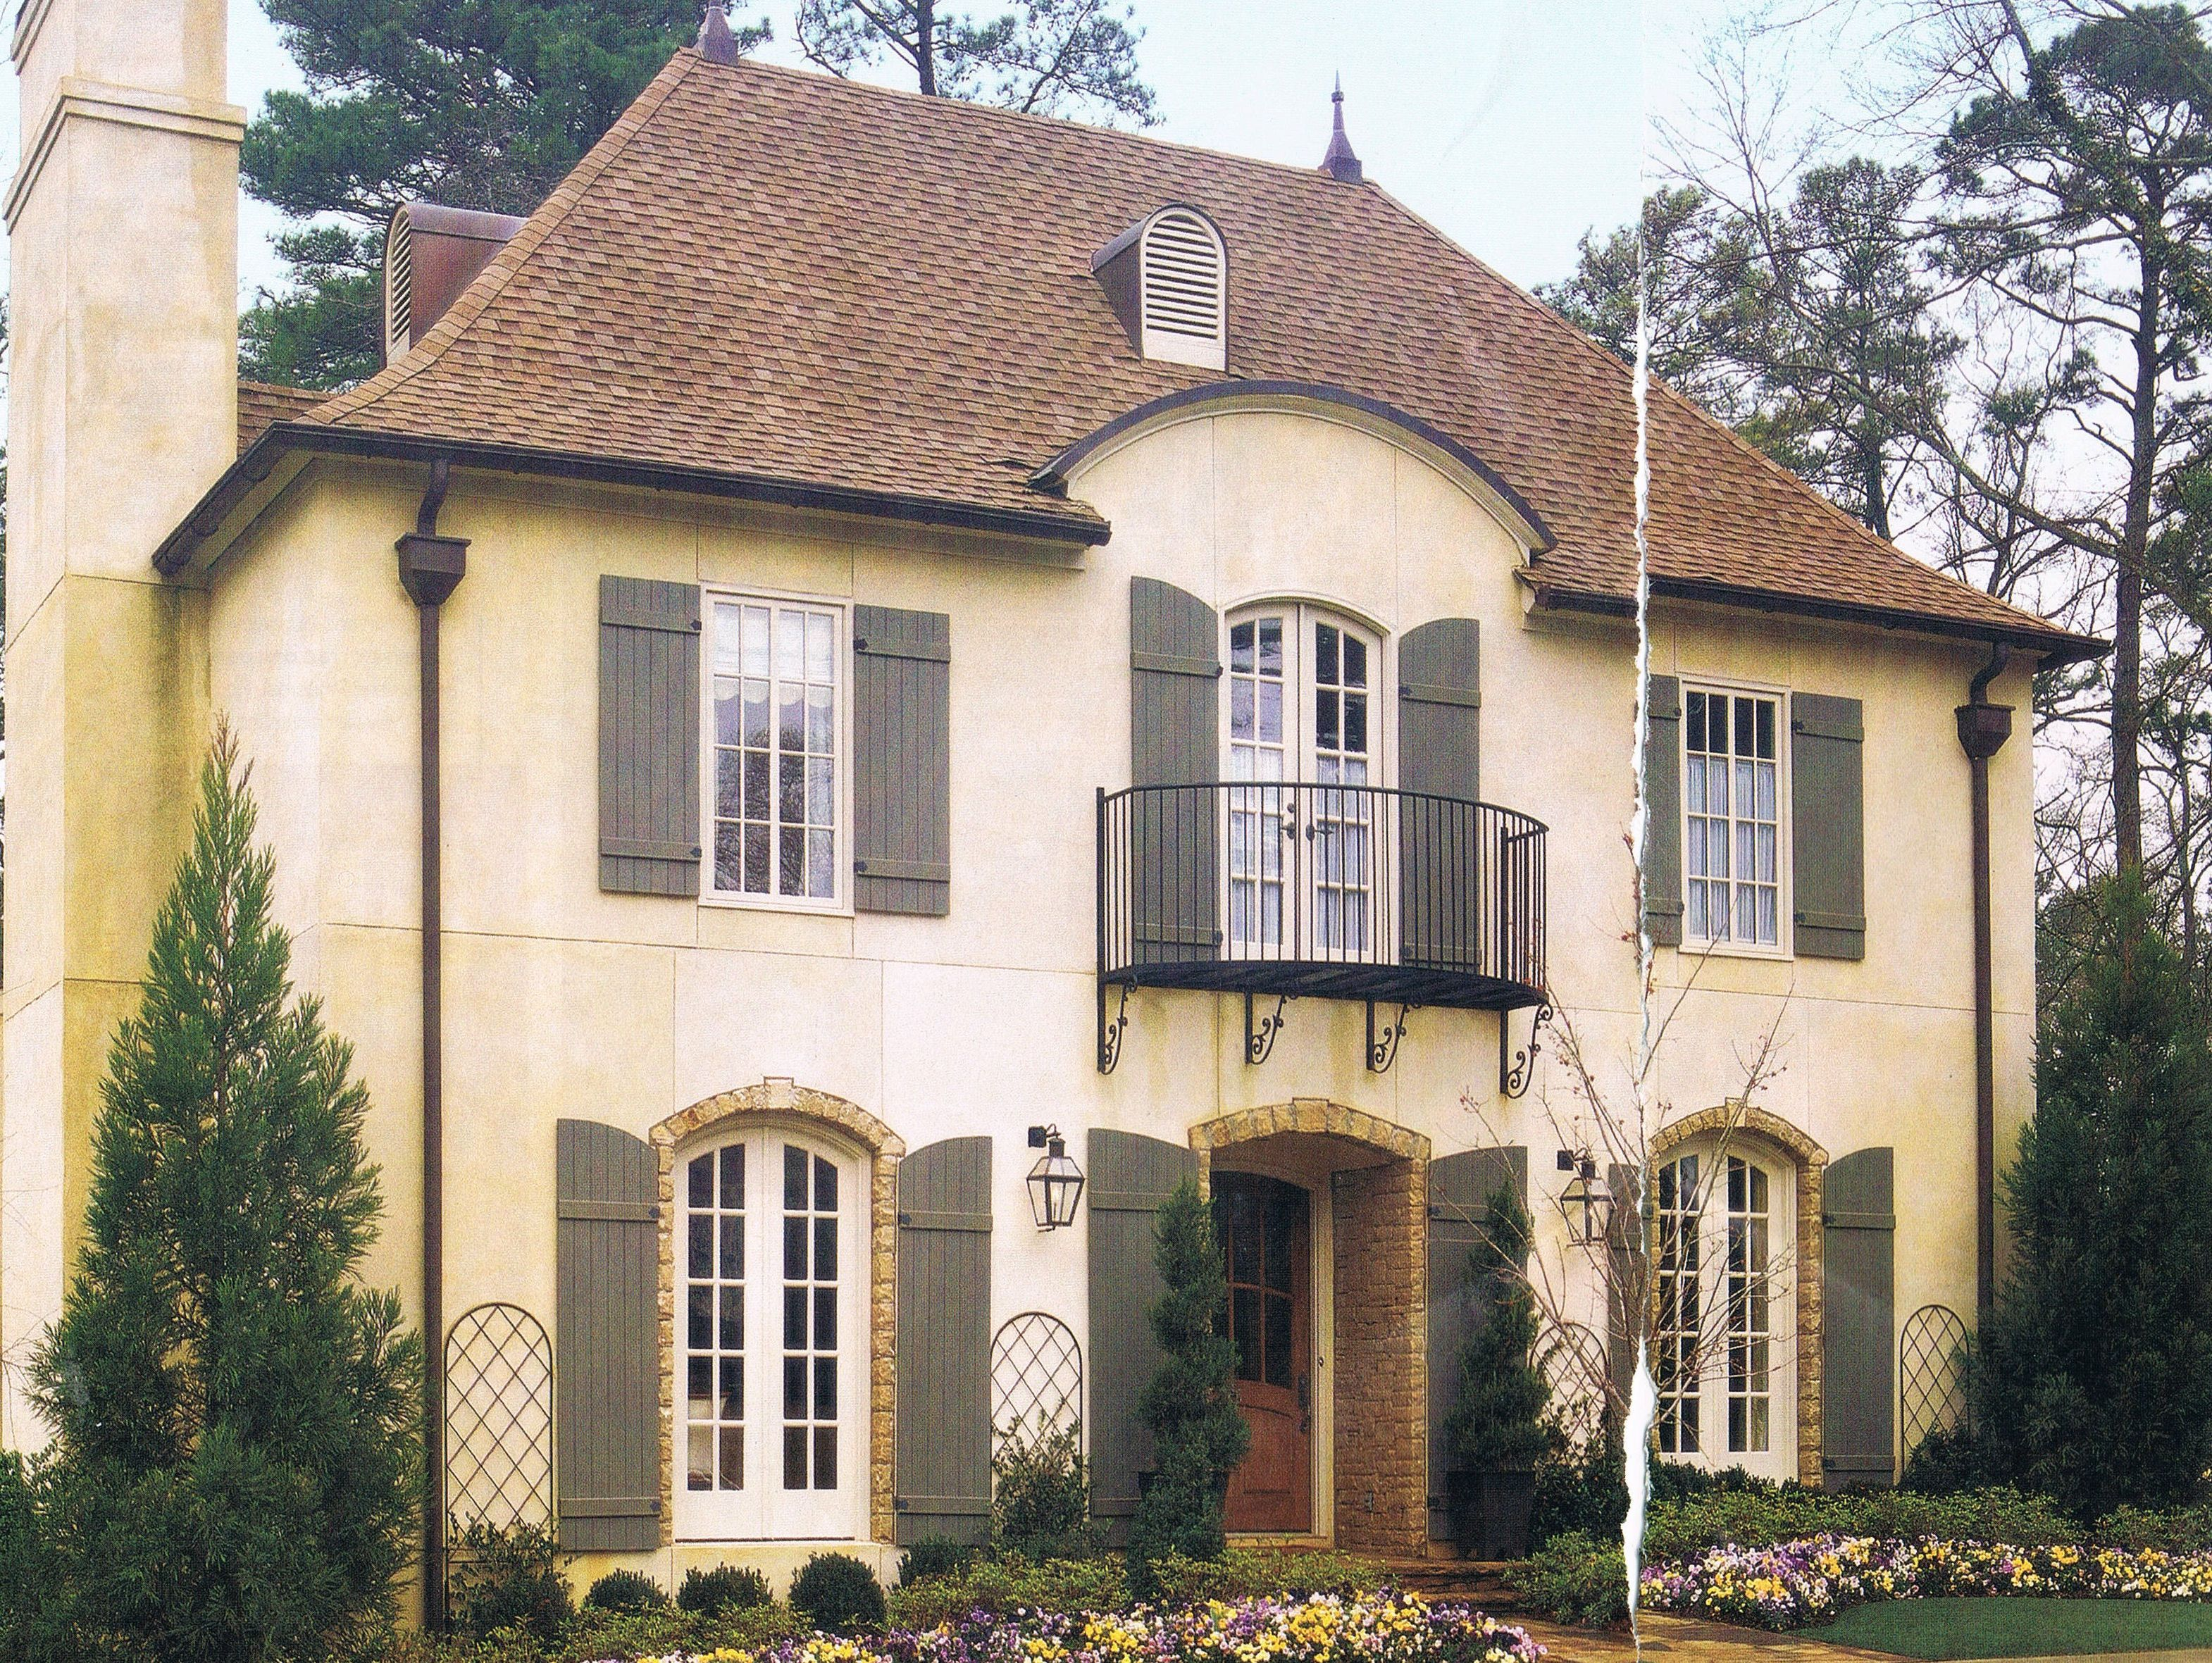 French provincial architectural styles french country French country architecture residential